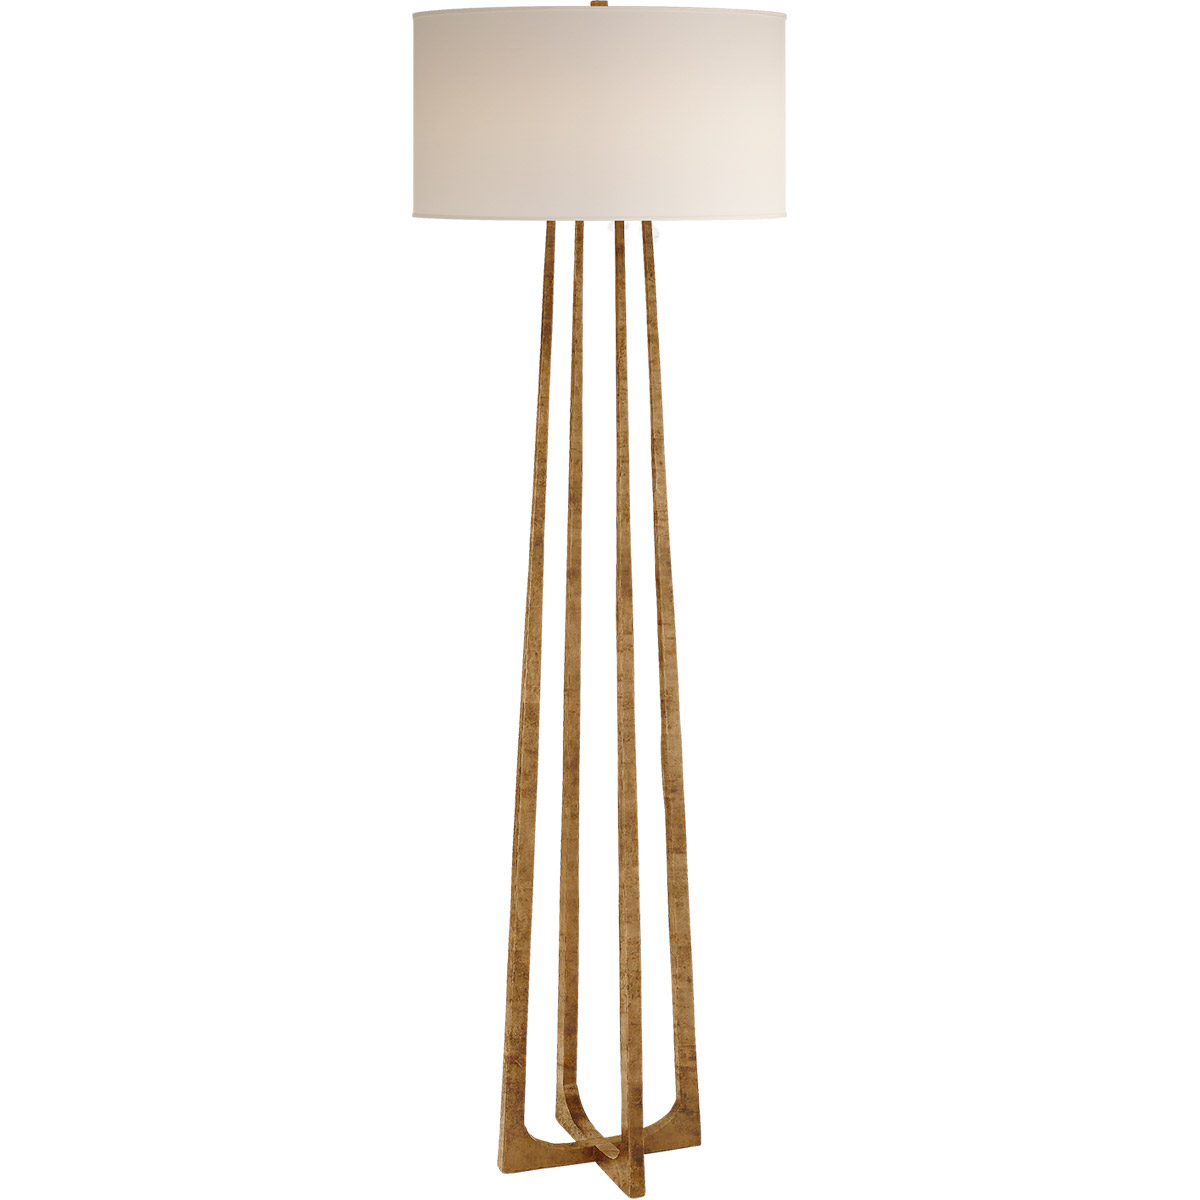 Scala Large Hand-Forged Floor Lamp